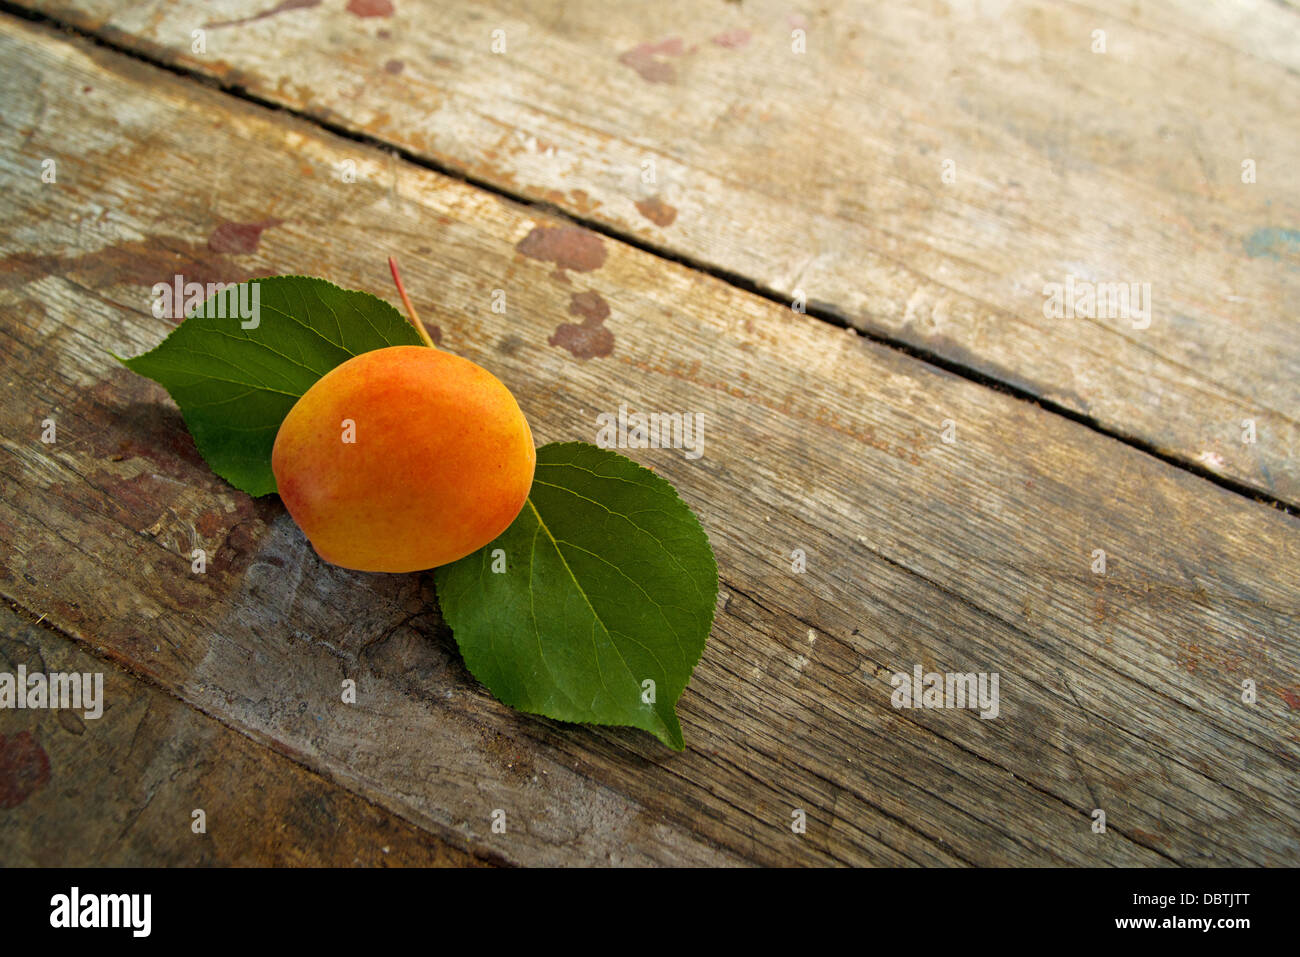 Ripe apricot on wood table - Stock Image